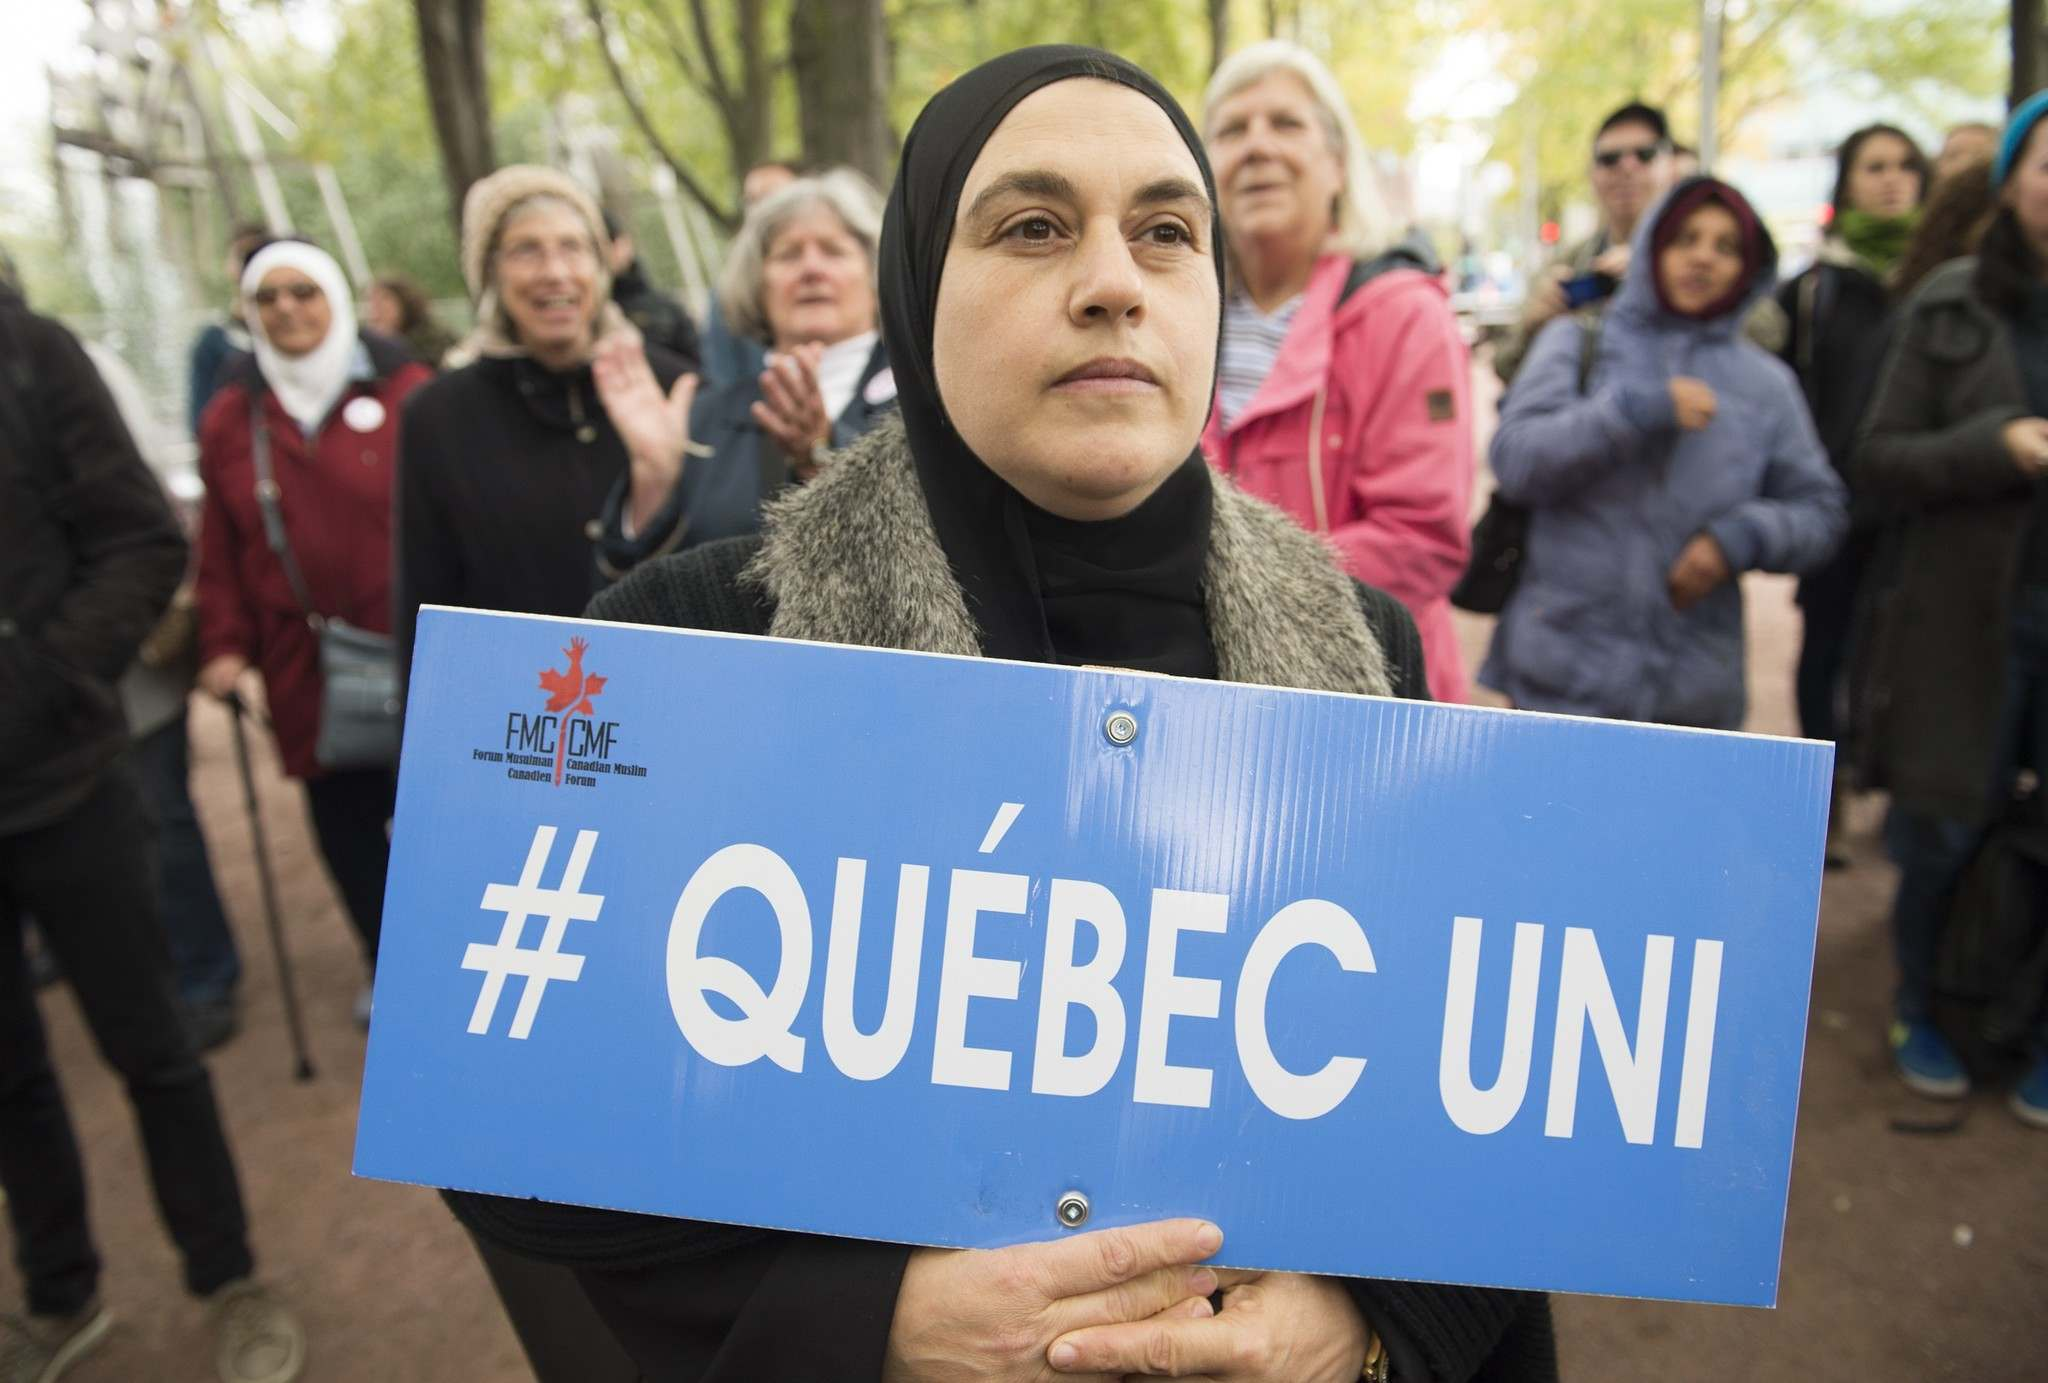 Demonstrators in Montreal vent their anger against Bill 21 on Oct. 6. The Quebec law bans some public-sector employees from wearing religious symbols in the workplace. (Graham Hughes / The Canadian Press files)